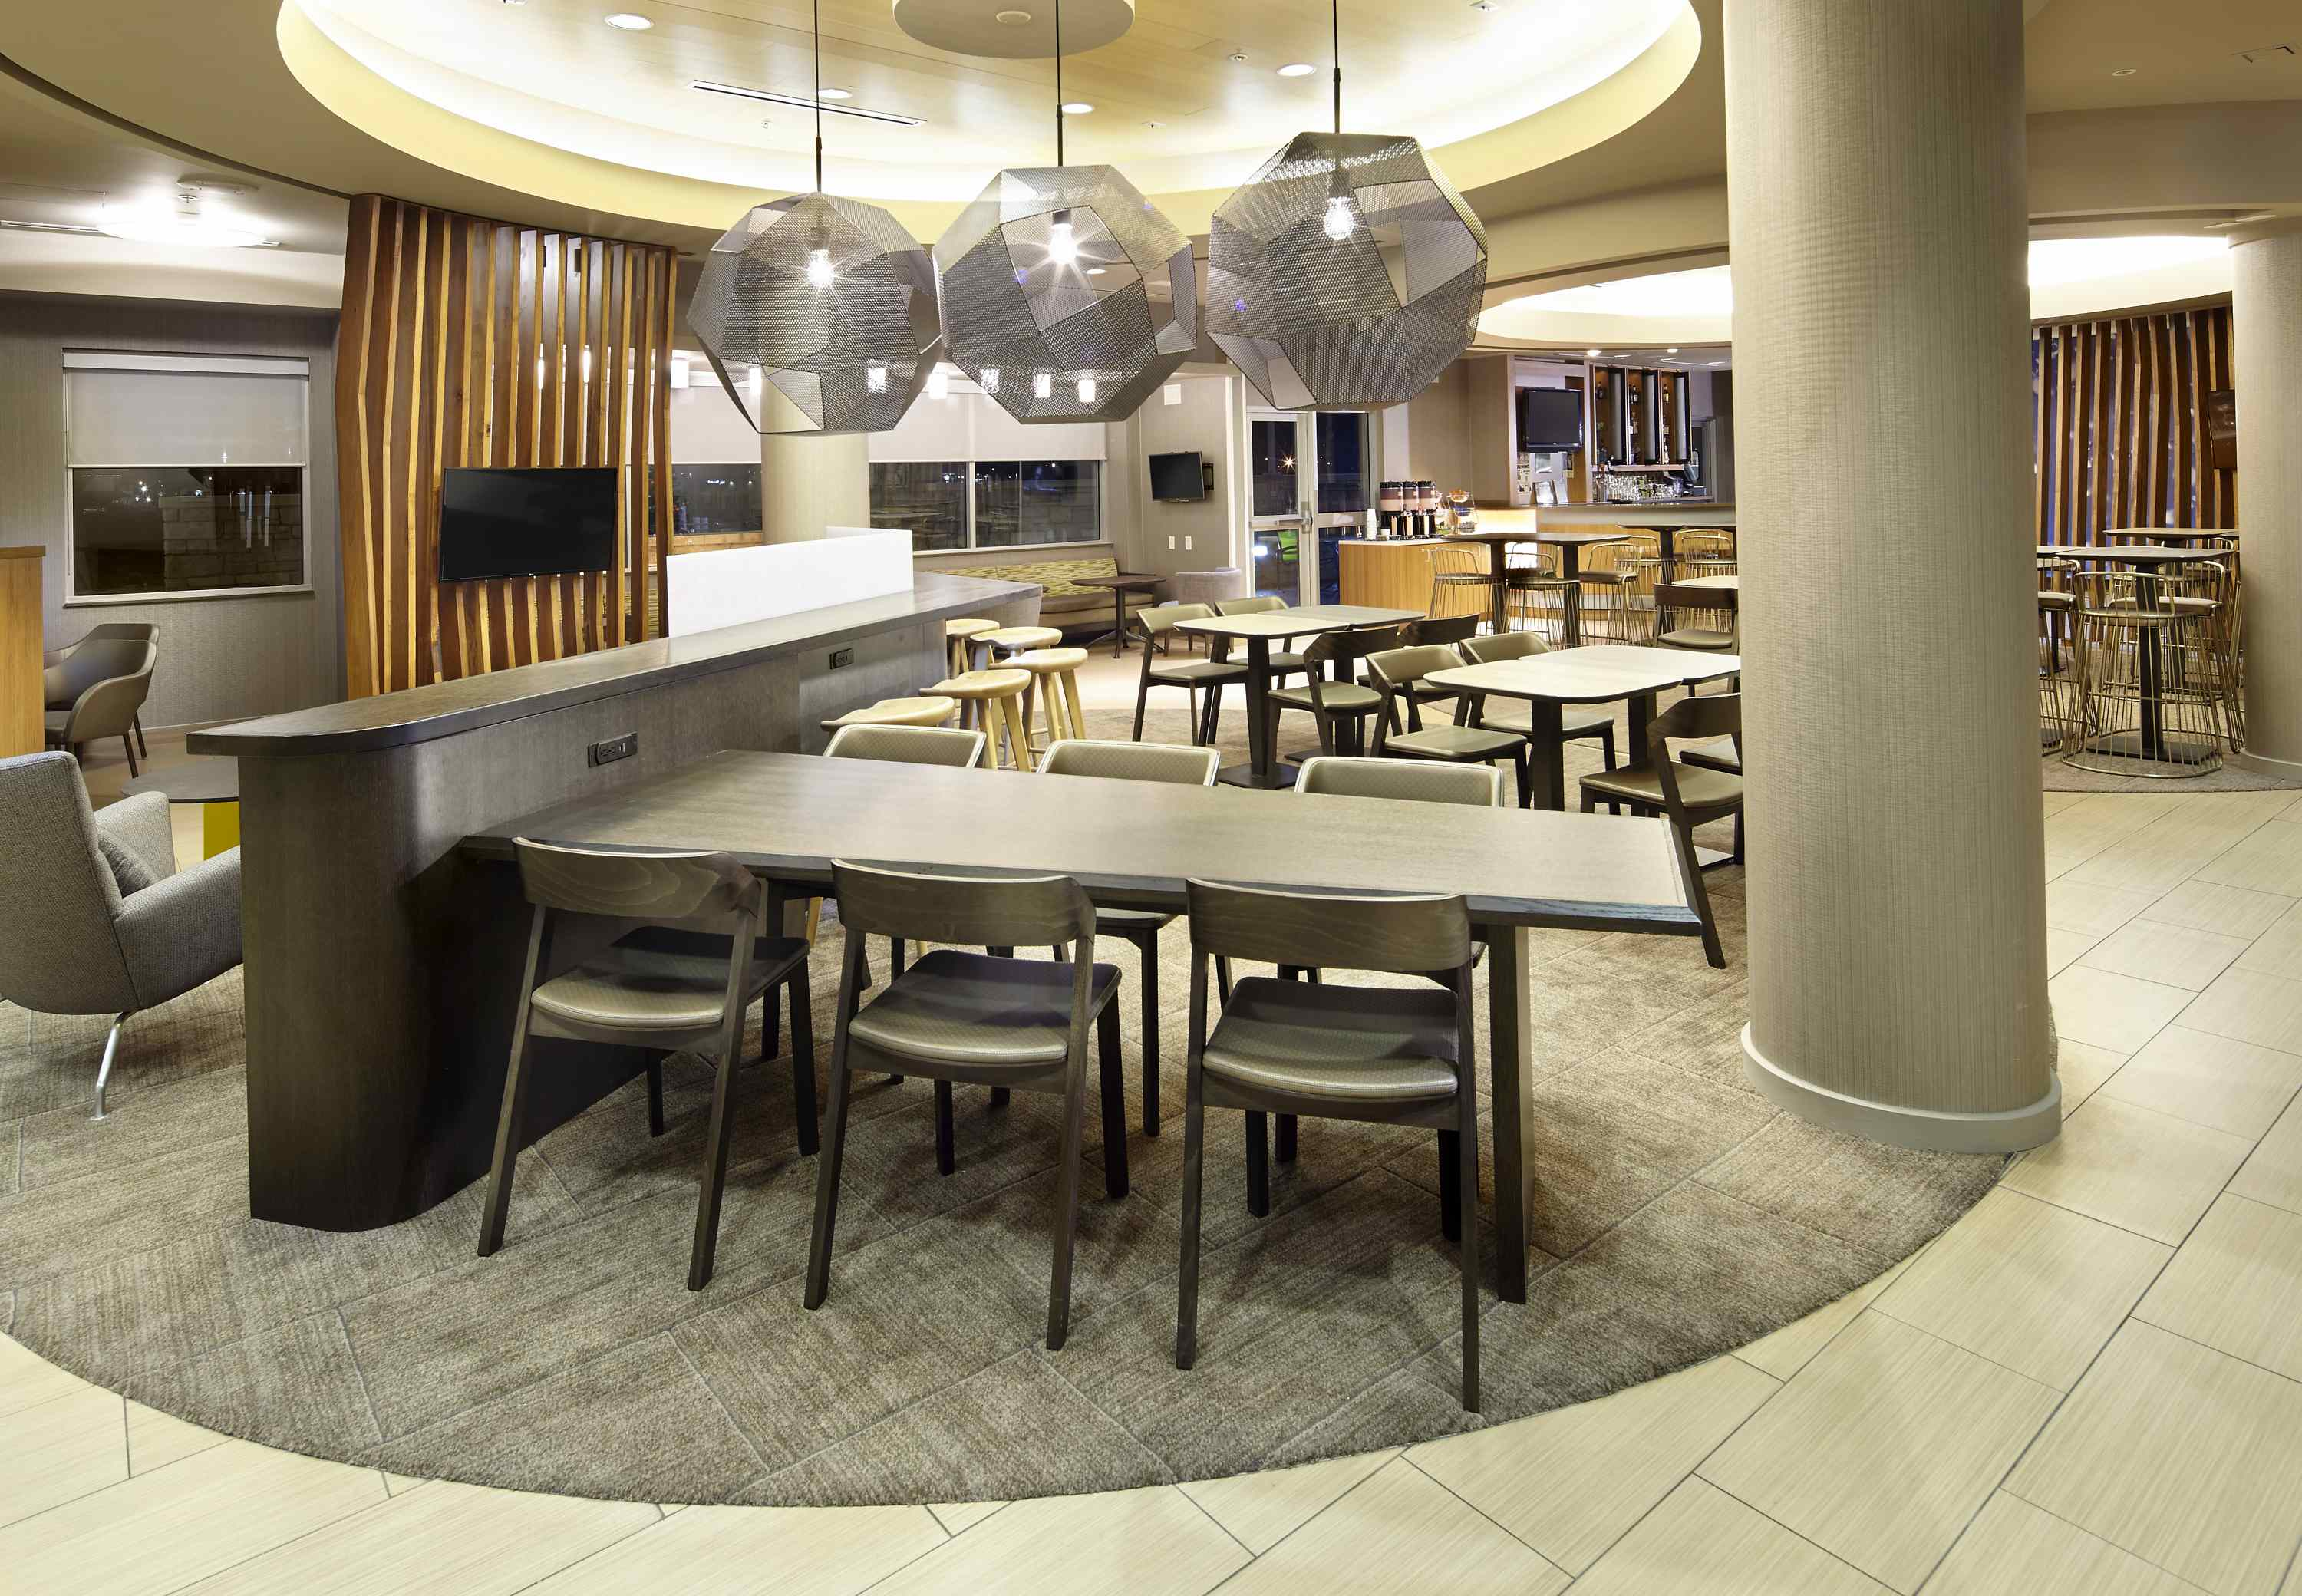 SpringHill Suites by Marriott Chicago Waukegan/Gurnee image 1